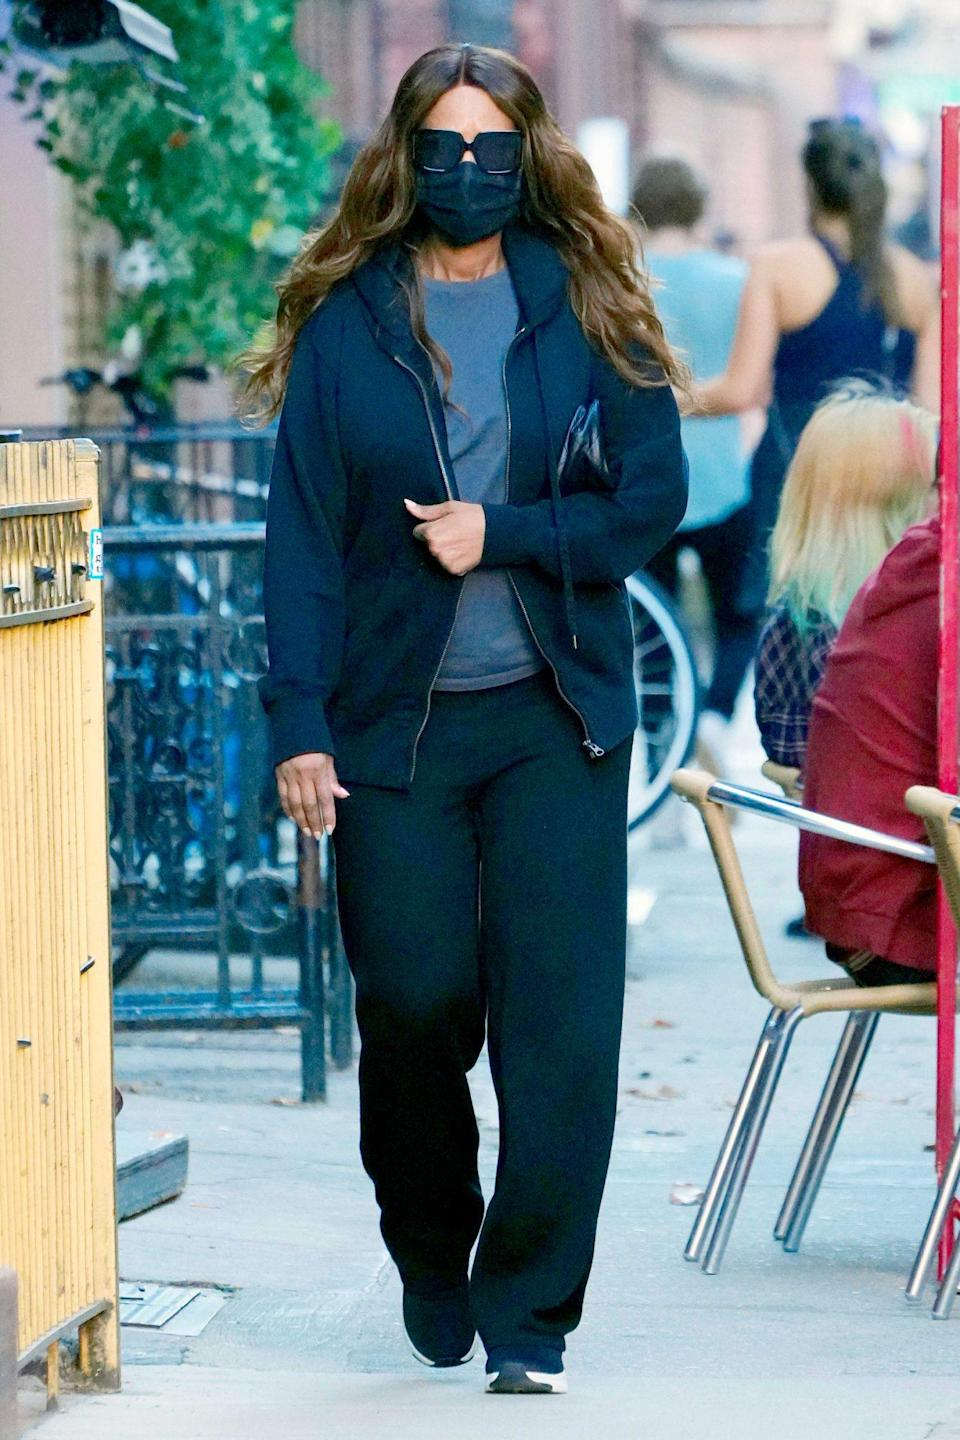 <p>Iman goes incognito in sunglasses and a face mask while out for a walk on Sunday in N.Y.C. </p>